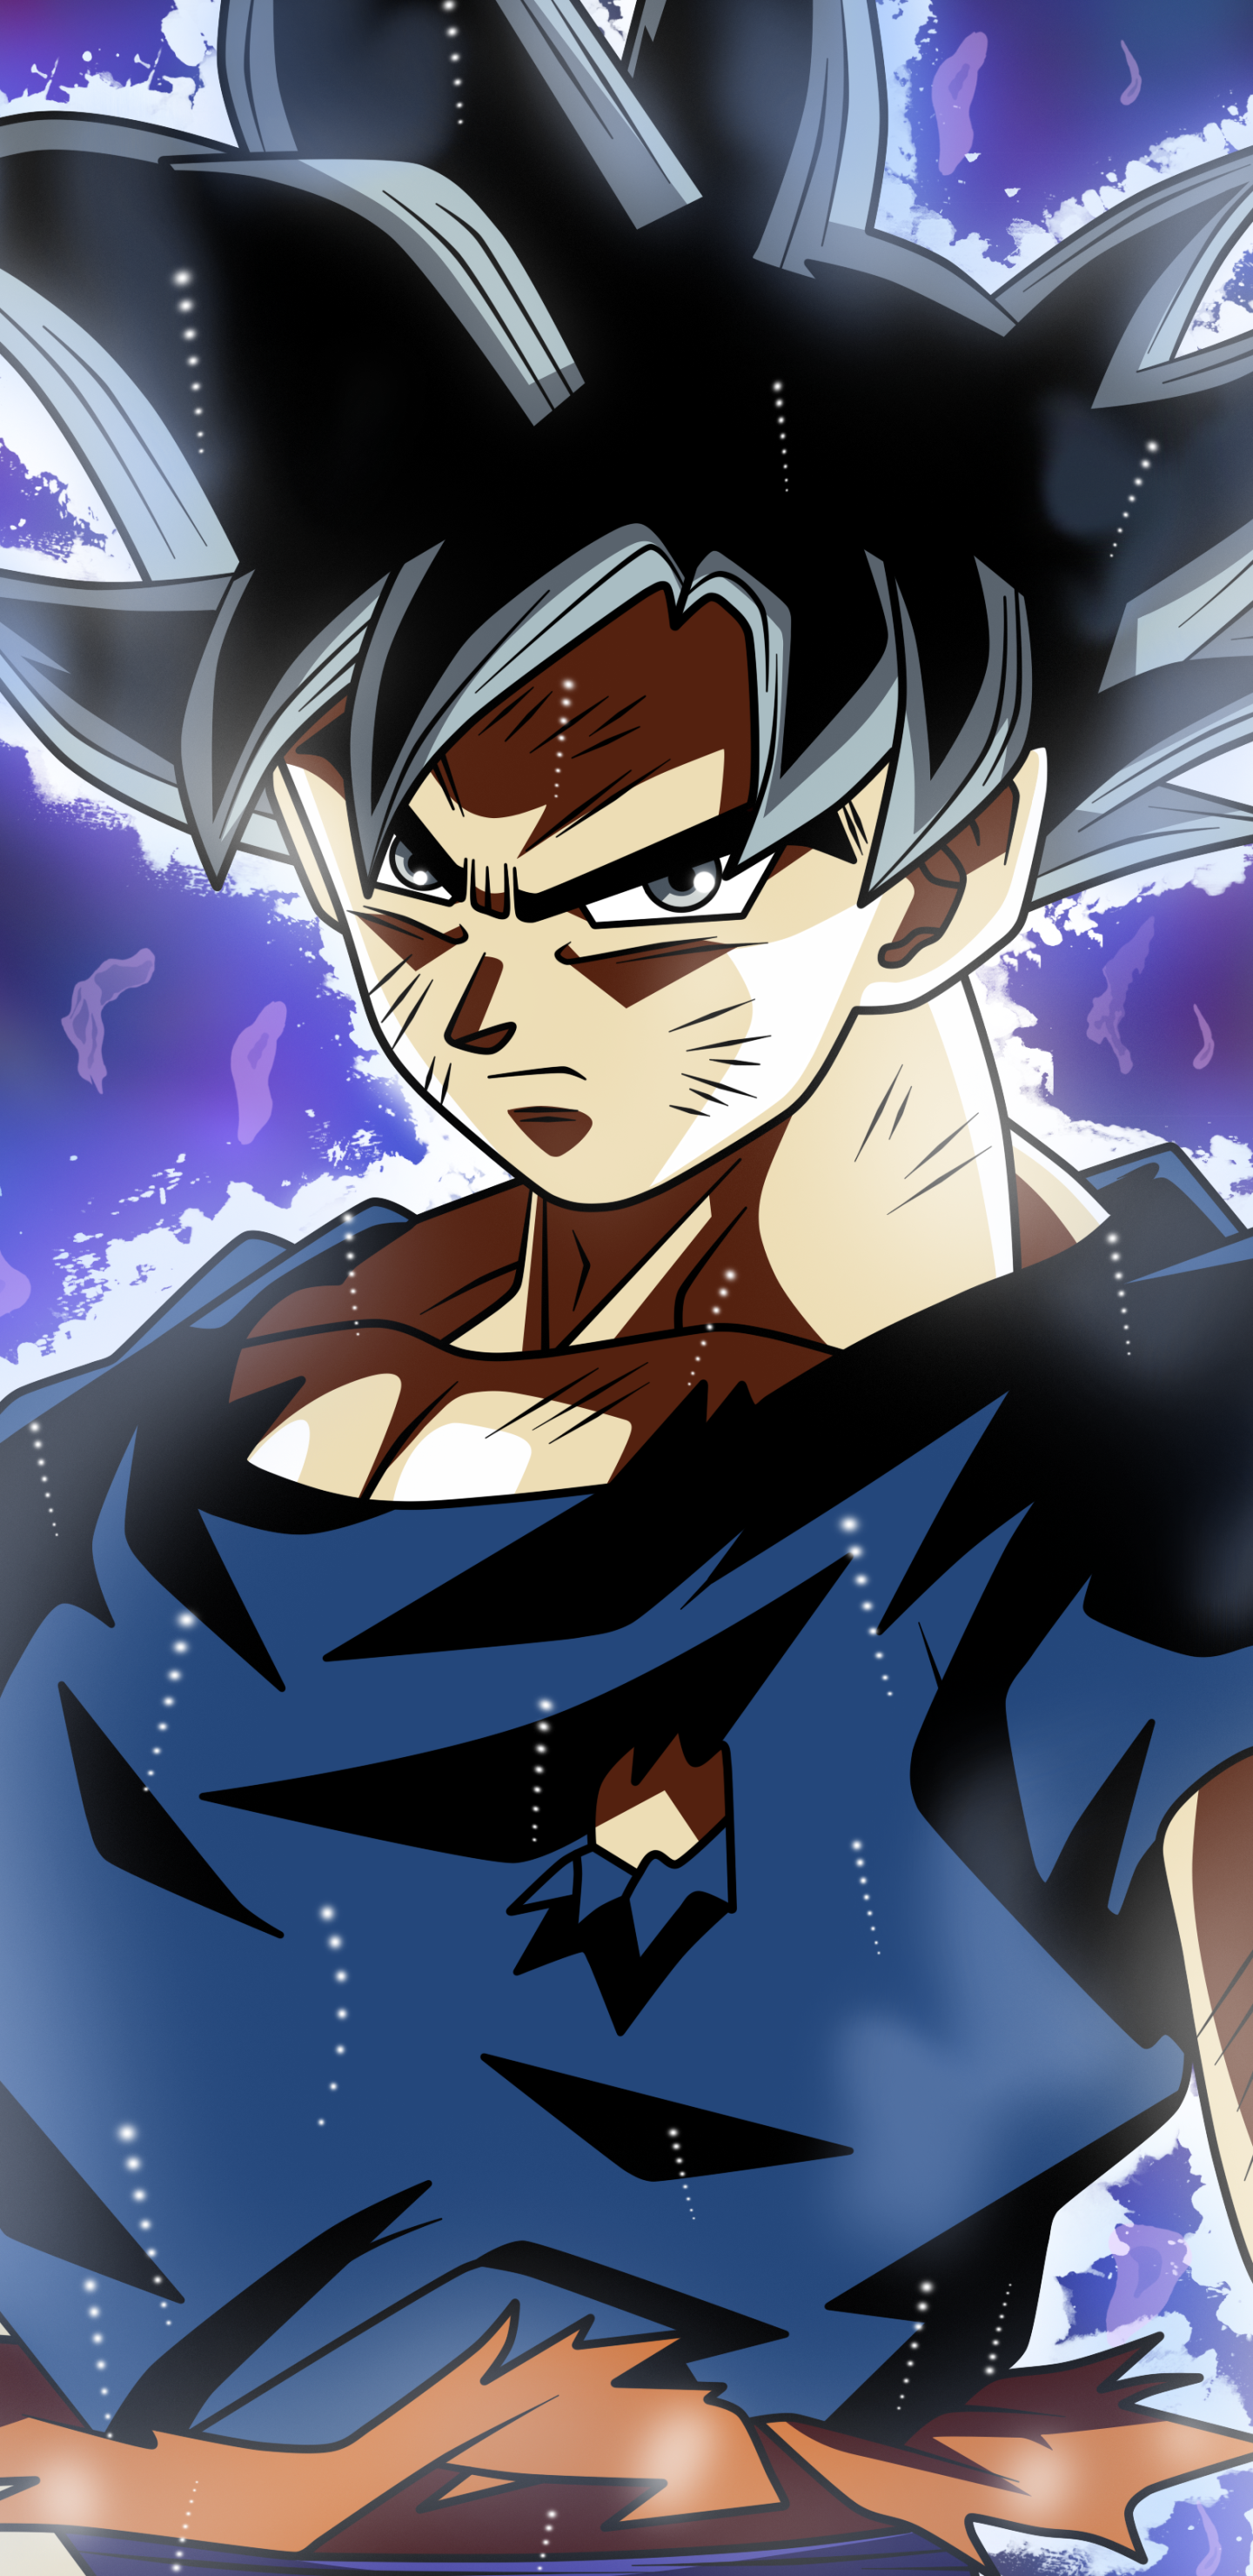 Download This Wallpaper Anime Dragon Ball Super 1440x2960 For All